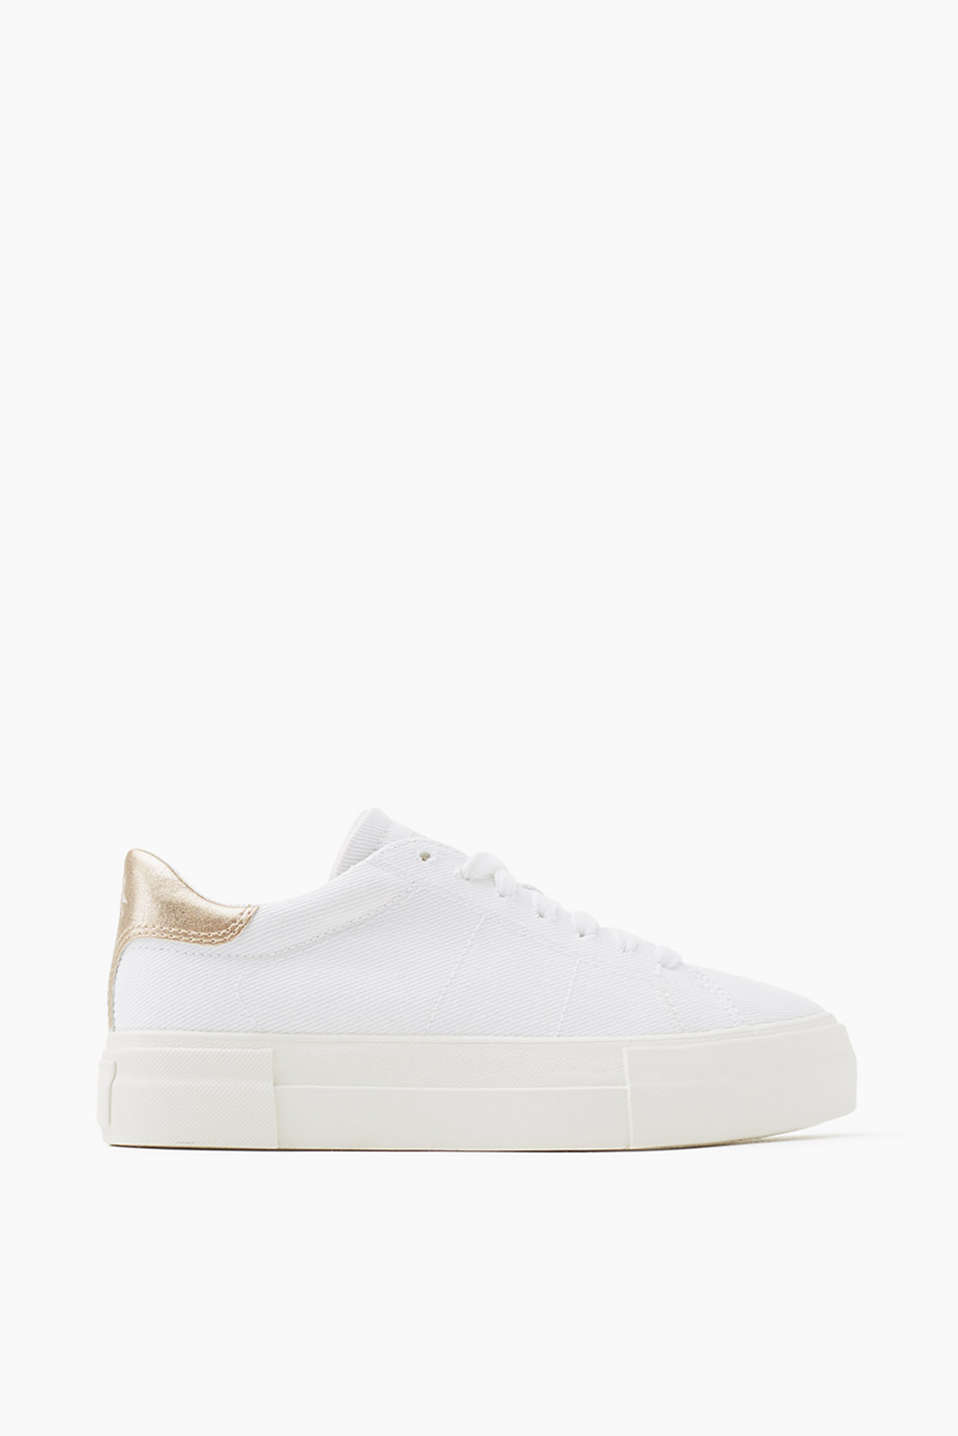 With a distinctive platform sole: lace-up trainers